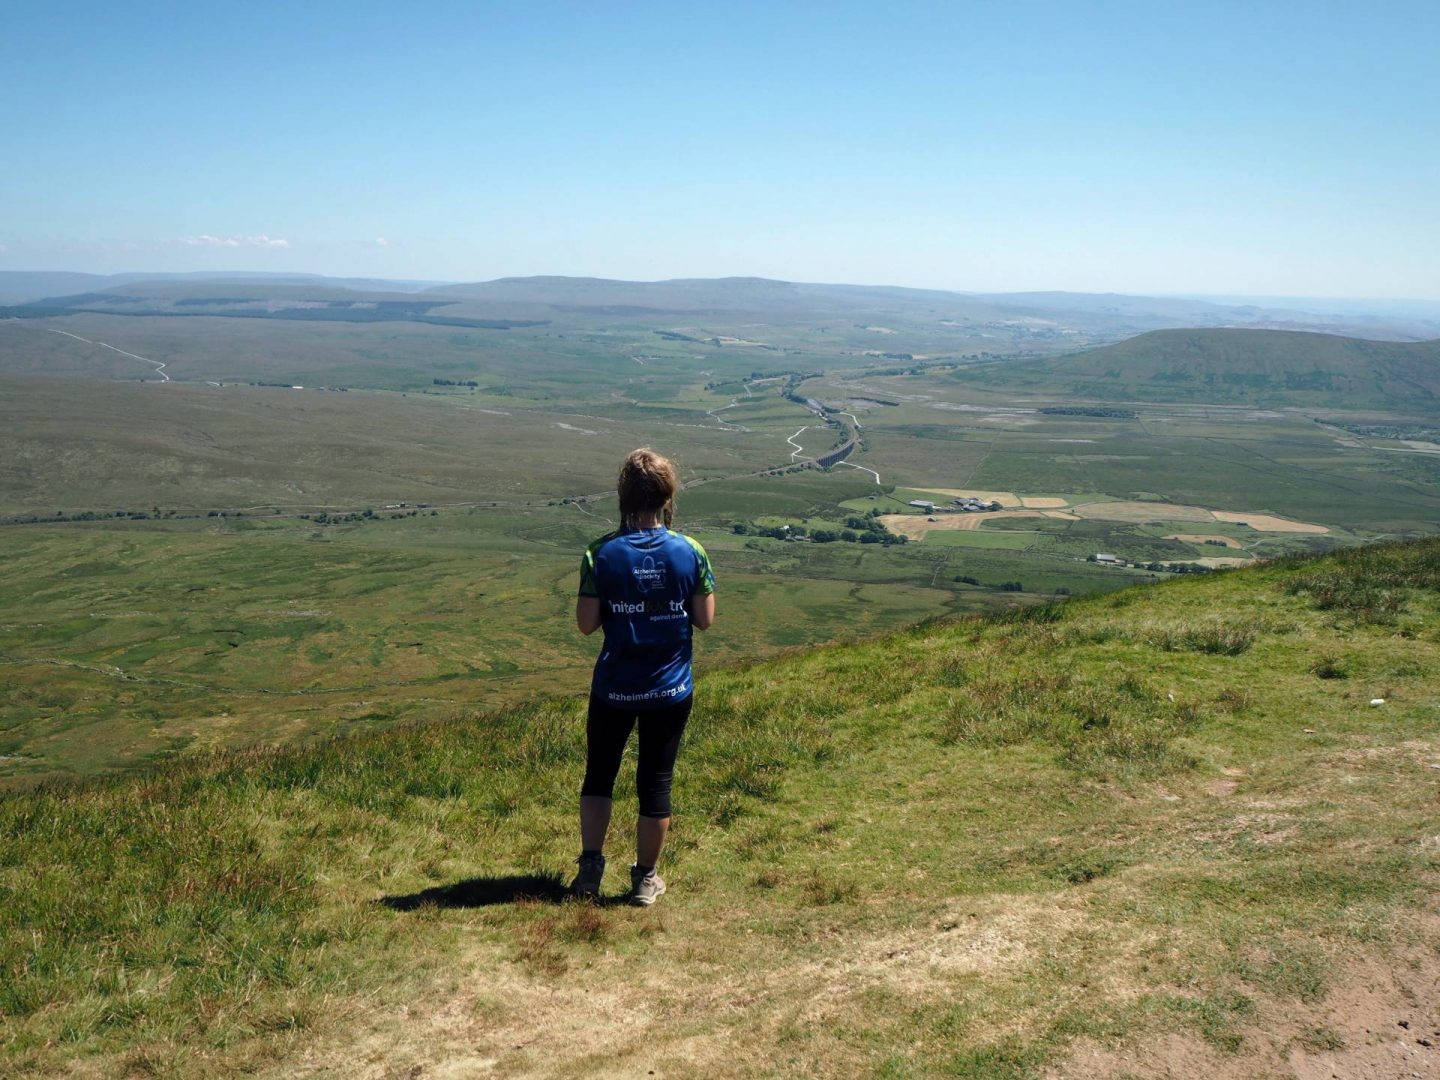 Looking out from the top of Whernside whilst hiking the yorkshire three peaks